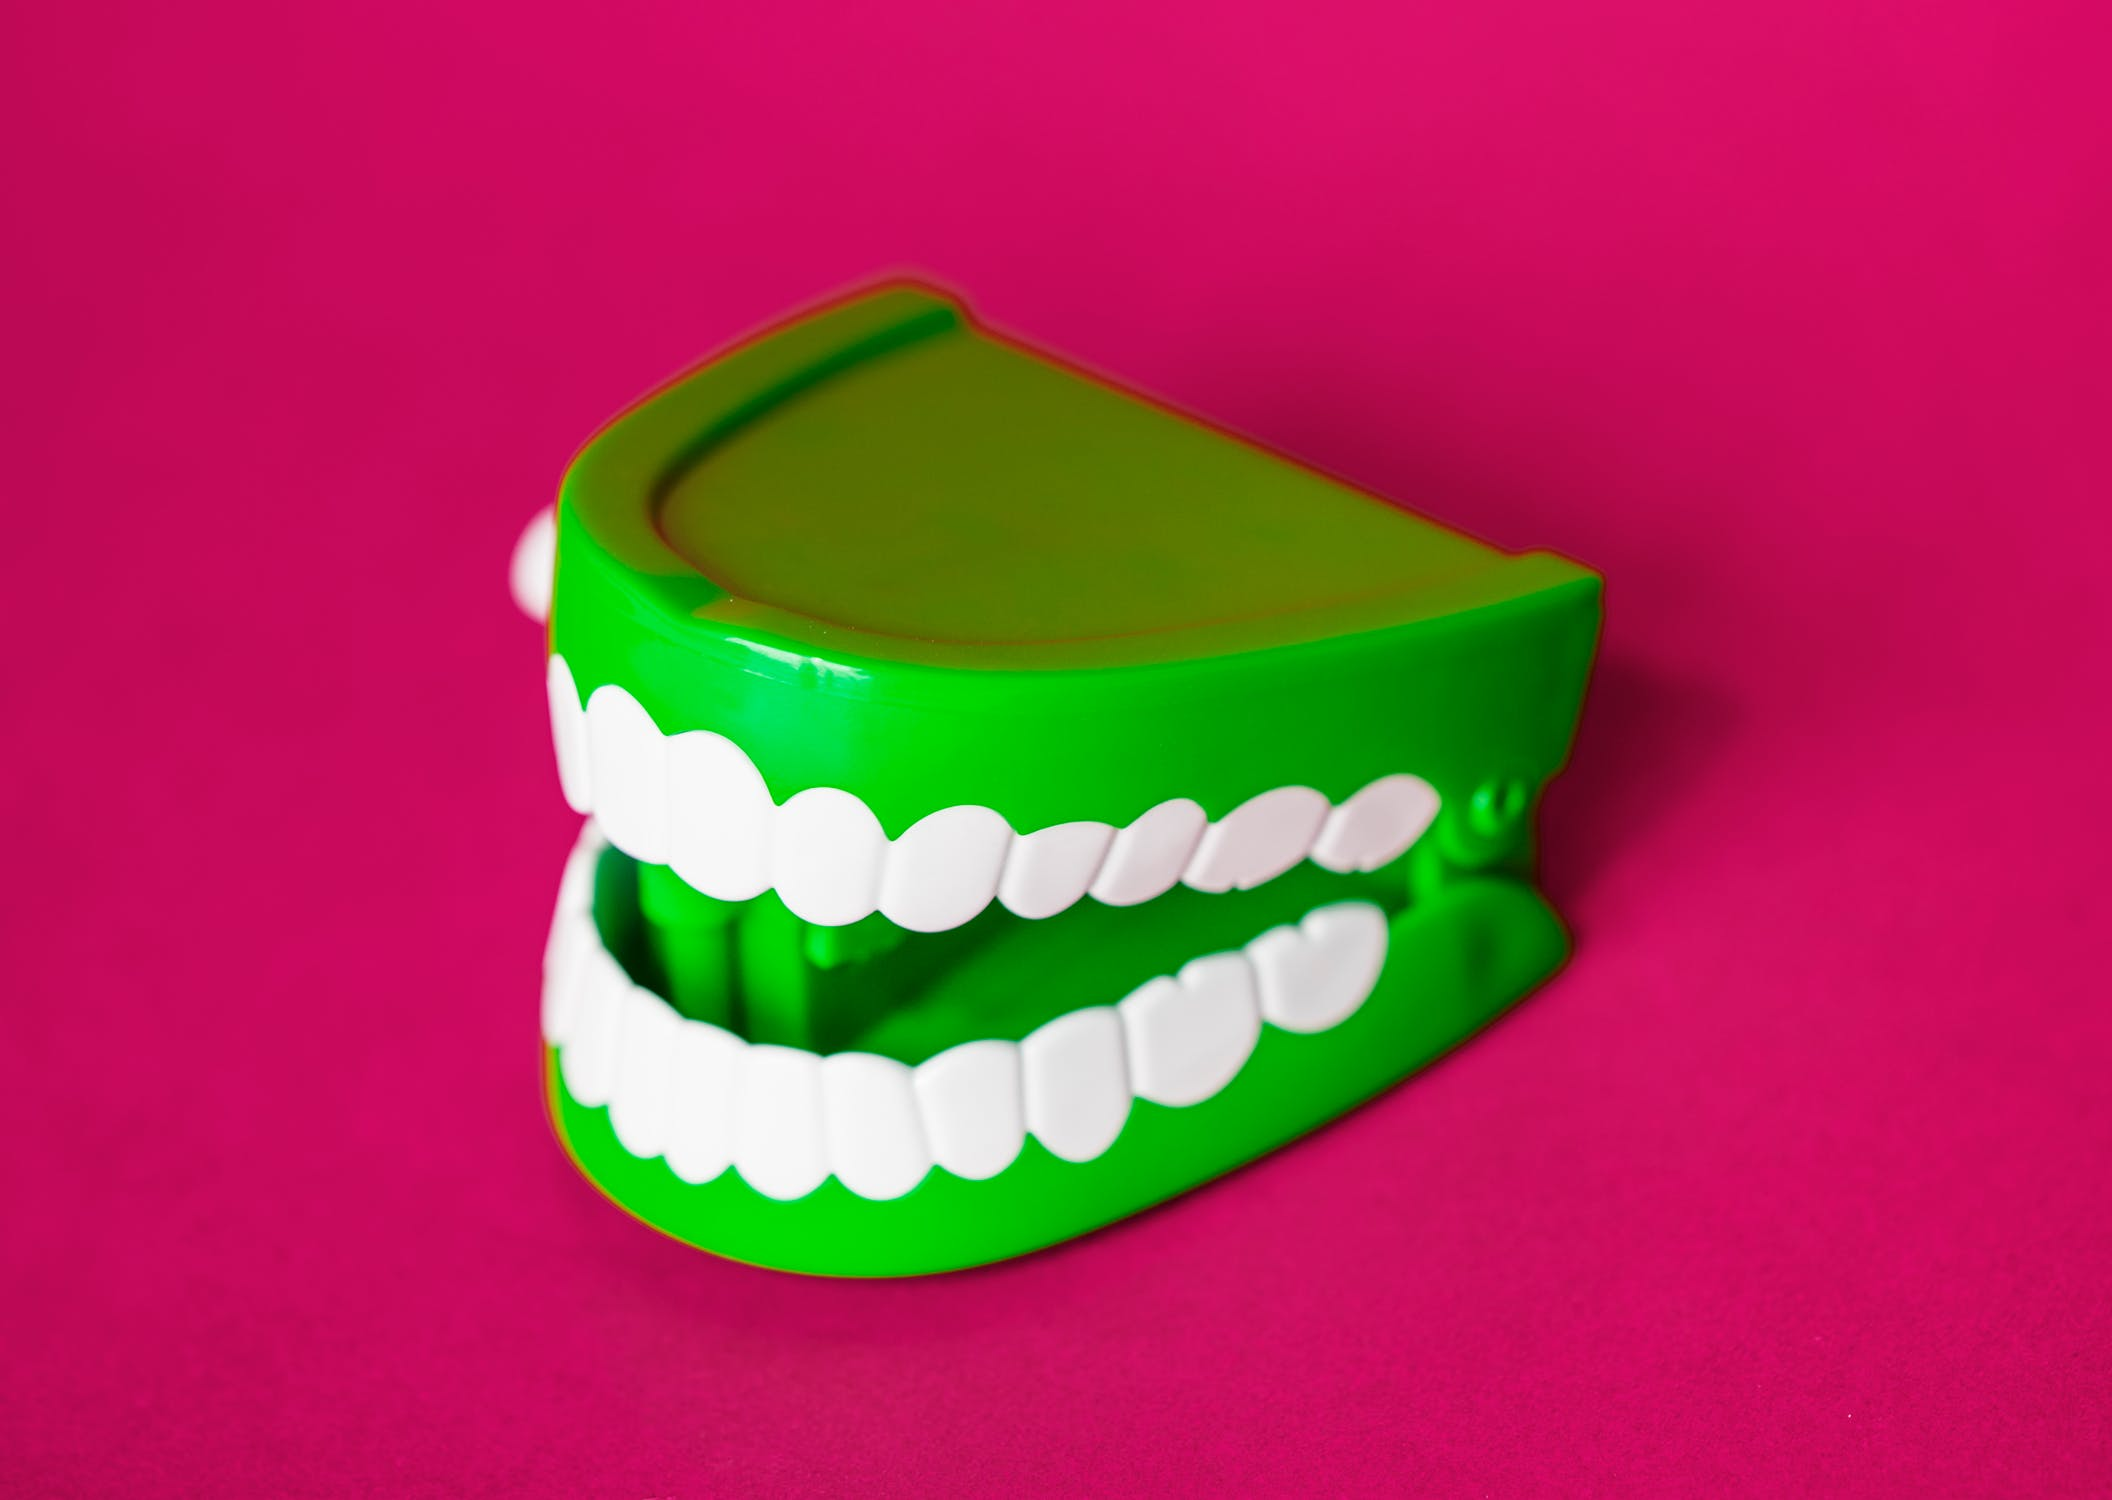 Green & White Denture Toy